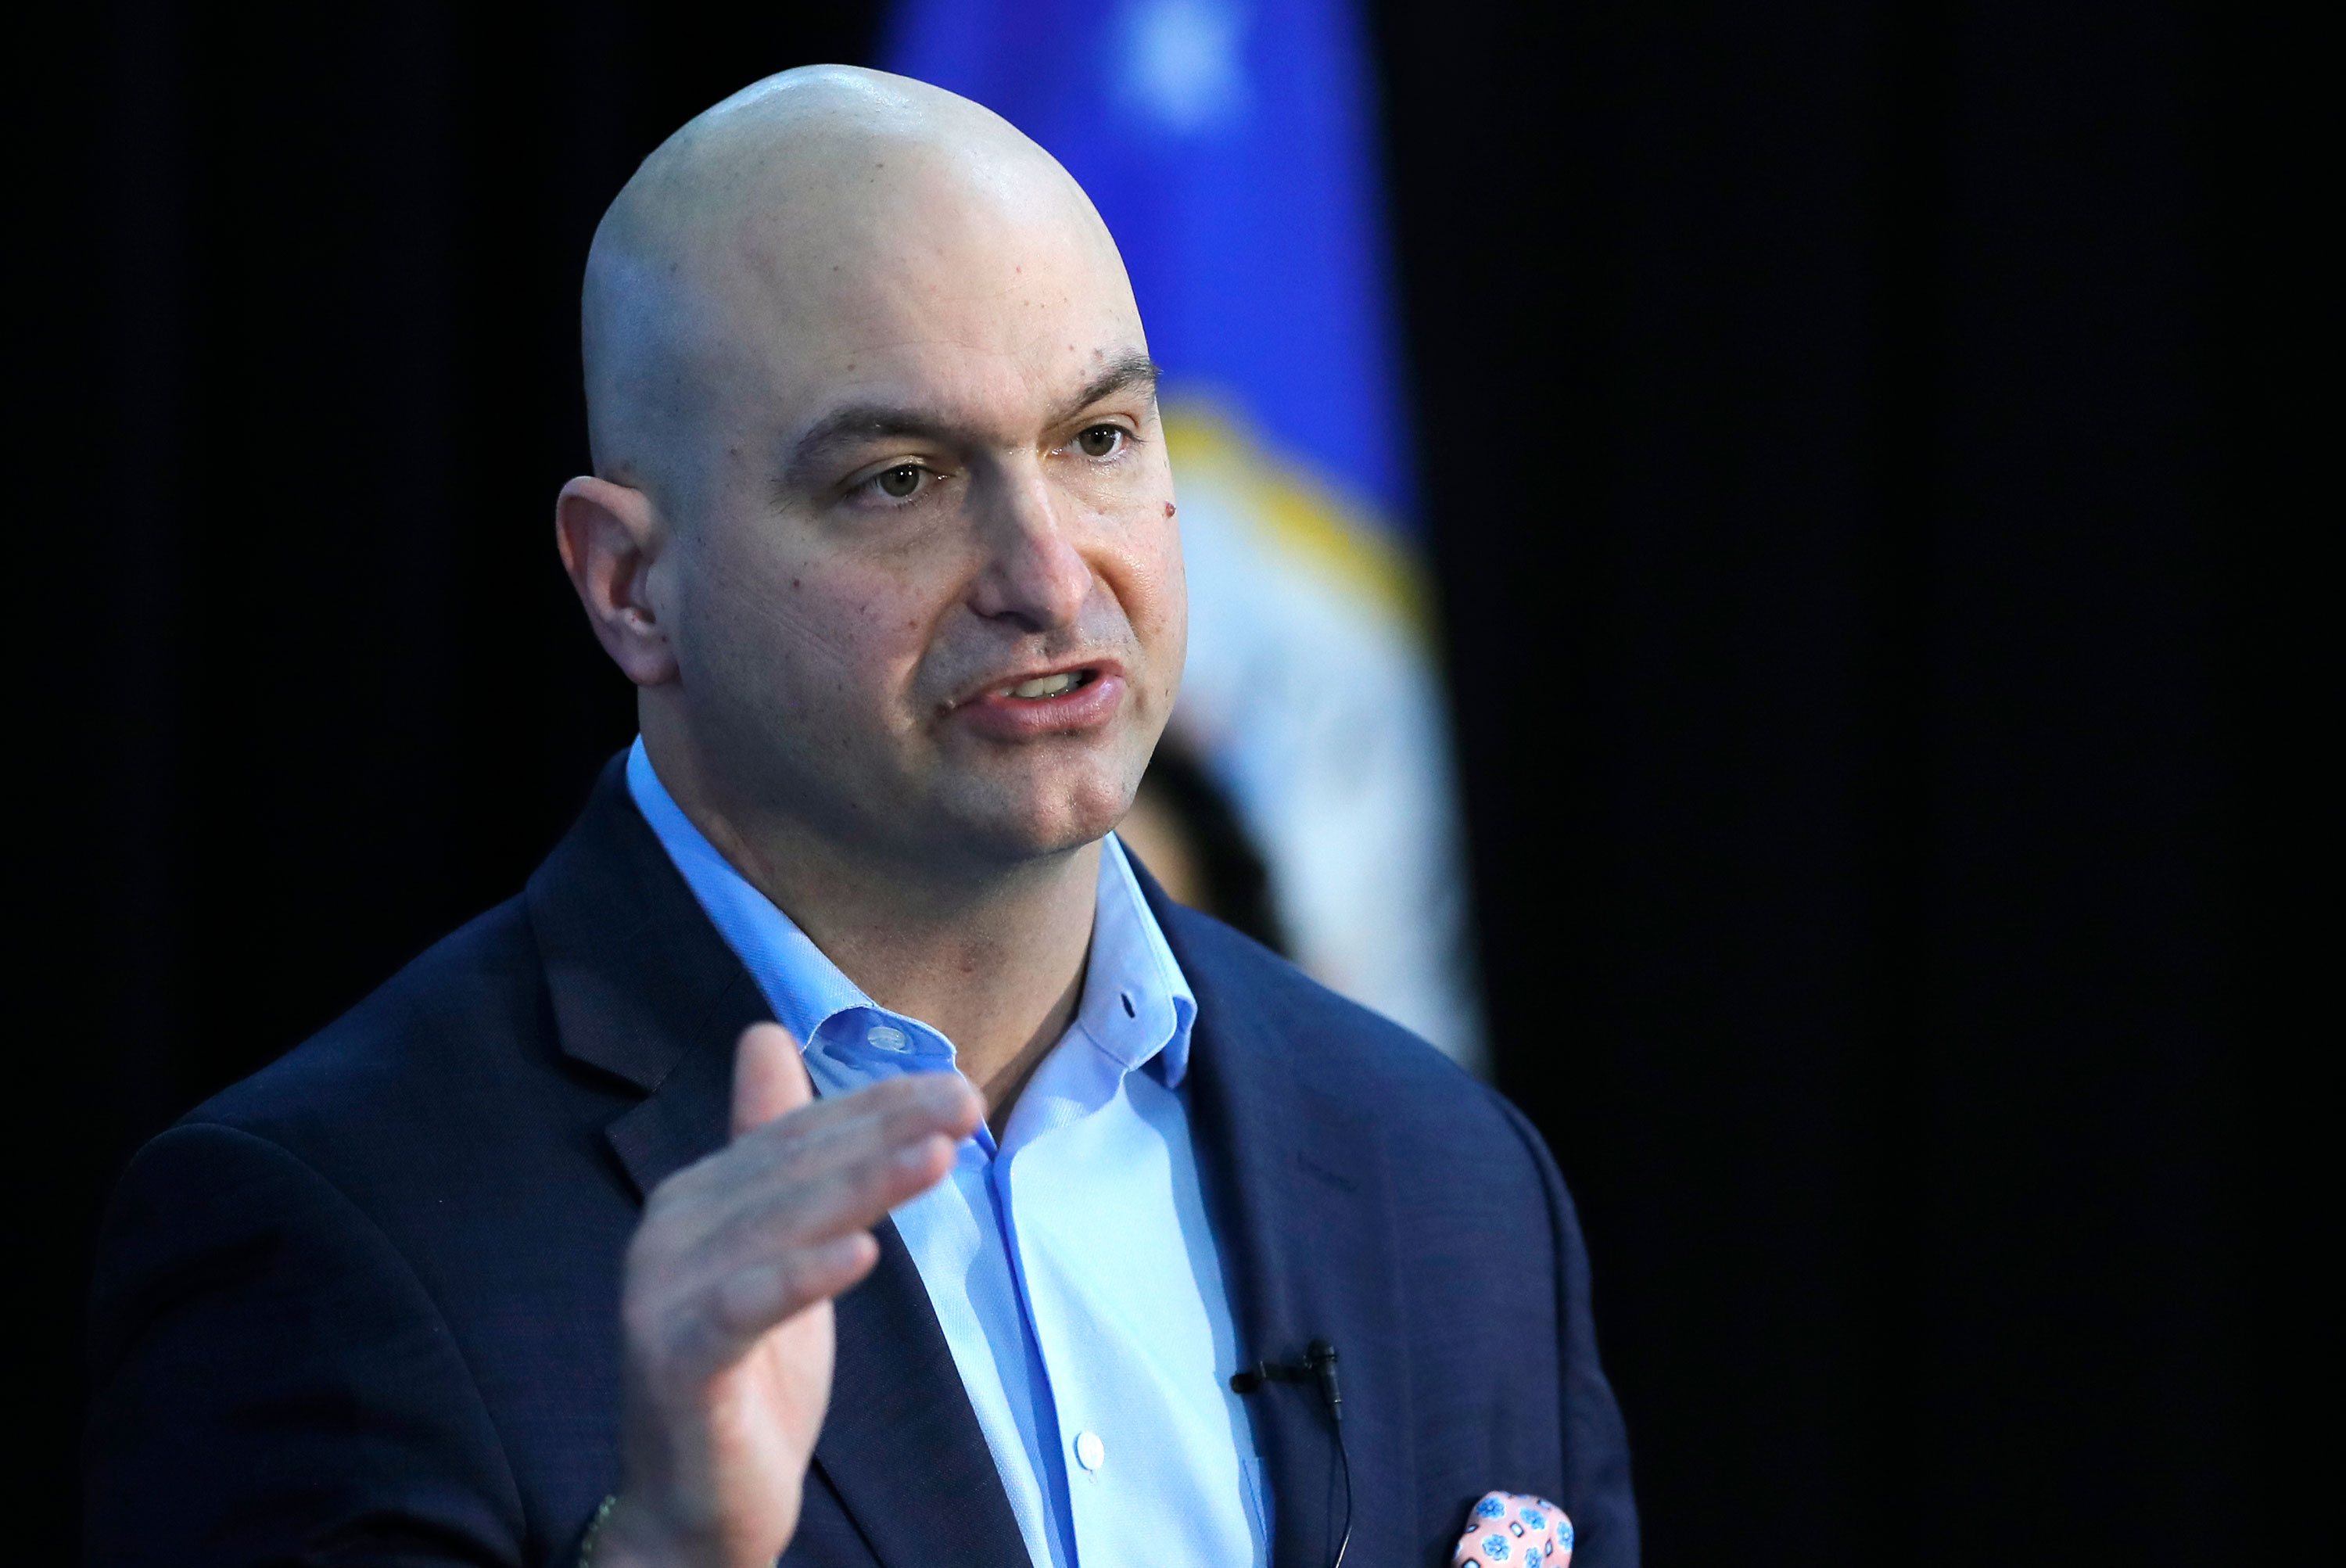 Detroit Schools Superintendent Nikolai Vitti speaks about the transition to virtual learning on April 23 in Detroit, Michigan.